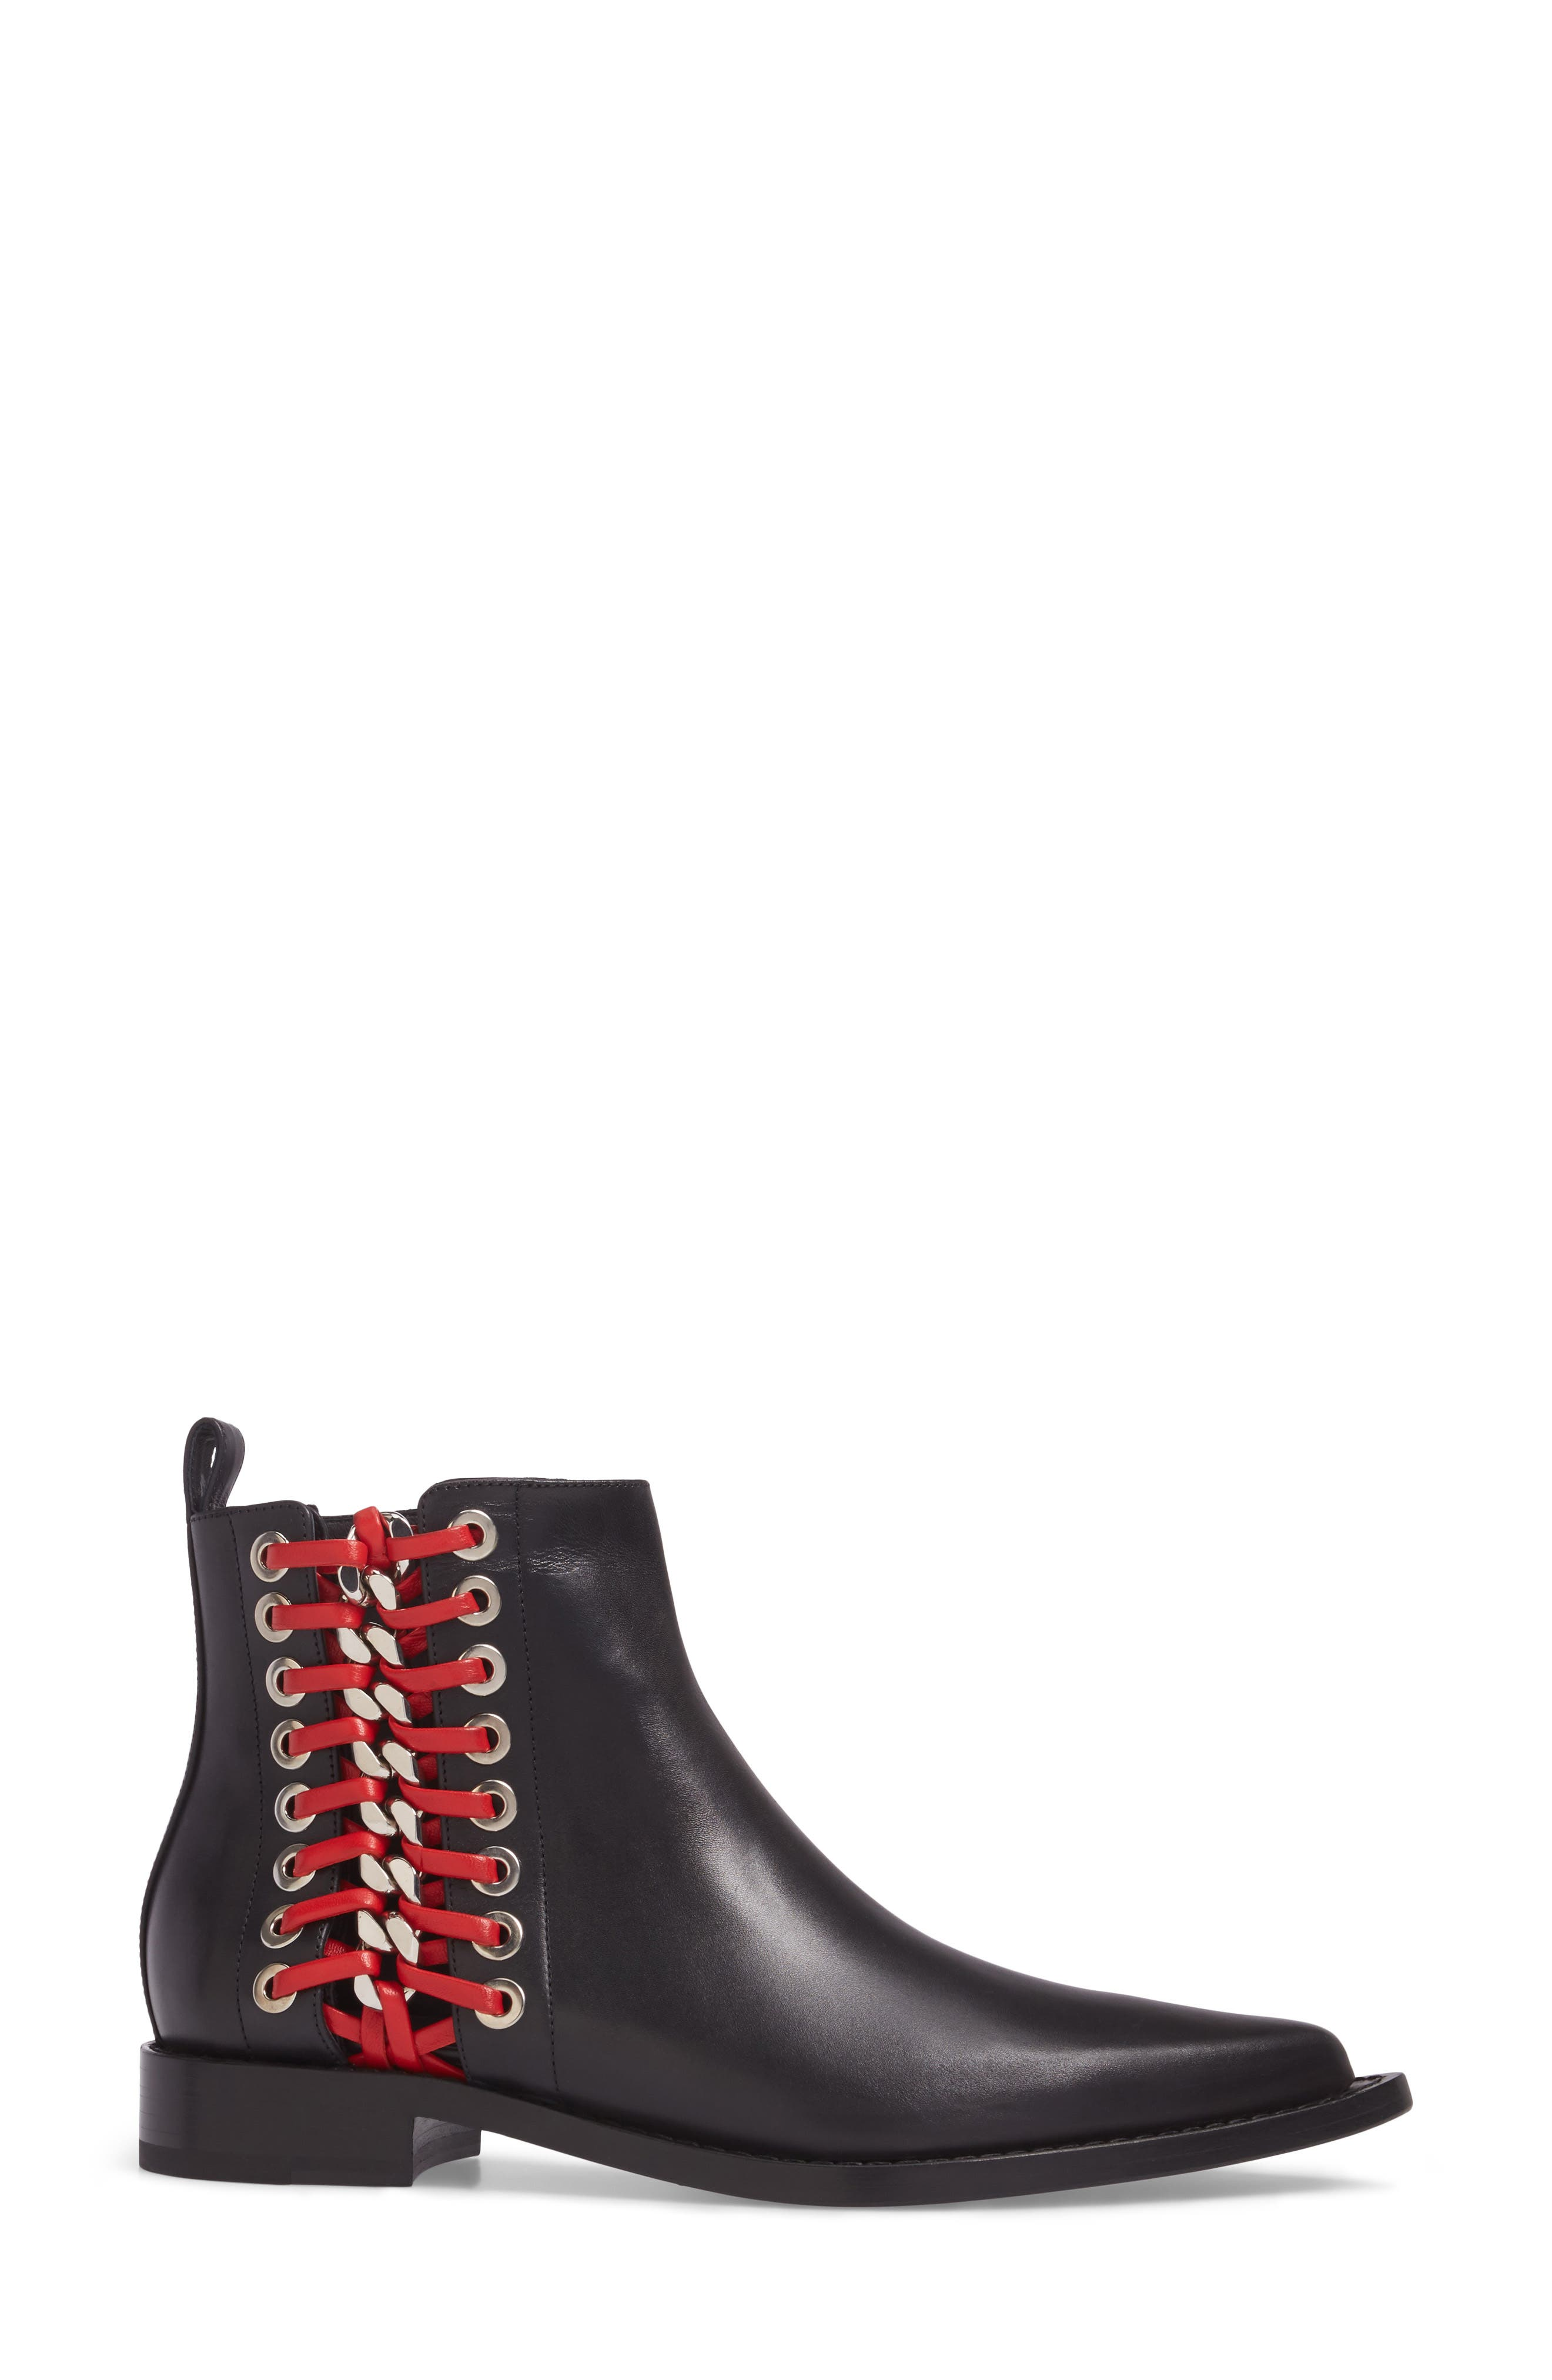 Alternate Image 3  - Alexander McQueen Laced Chain Pointy Toe Boot (Women)